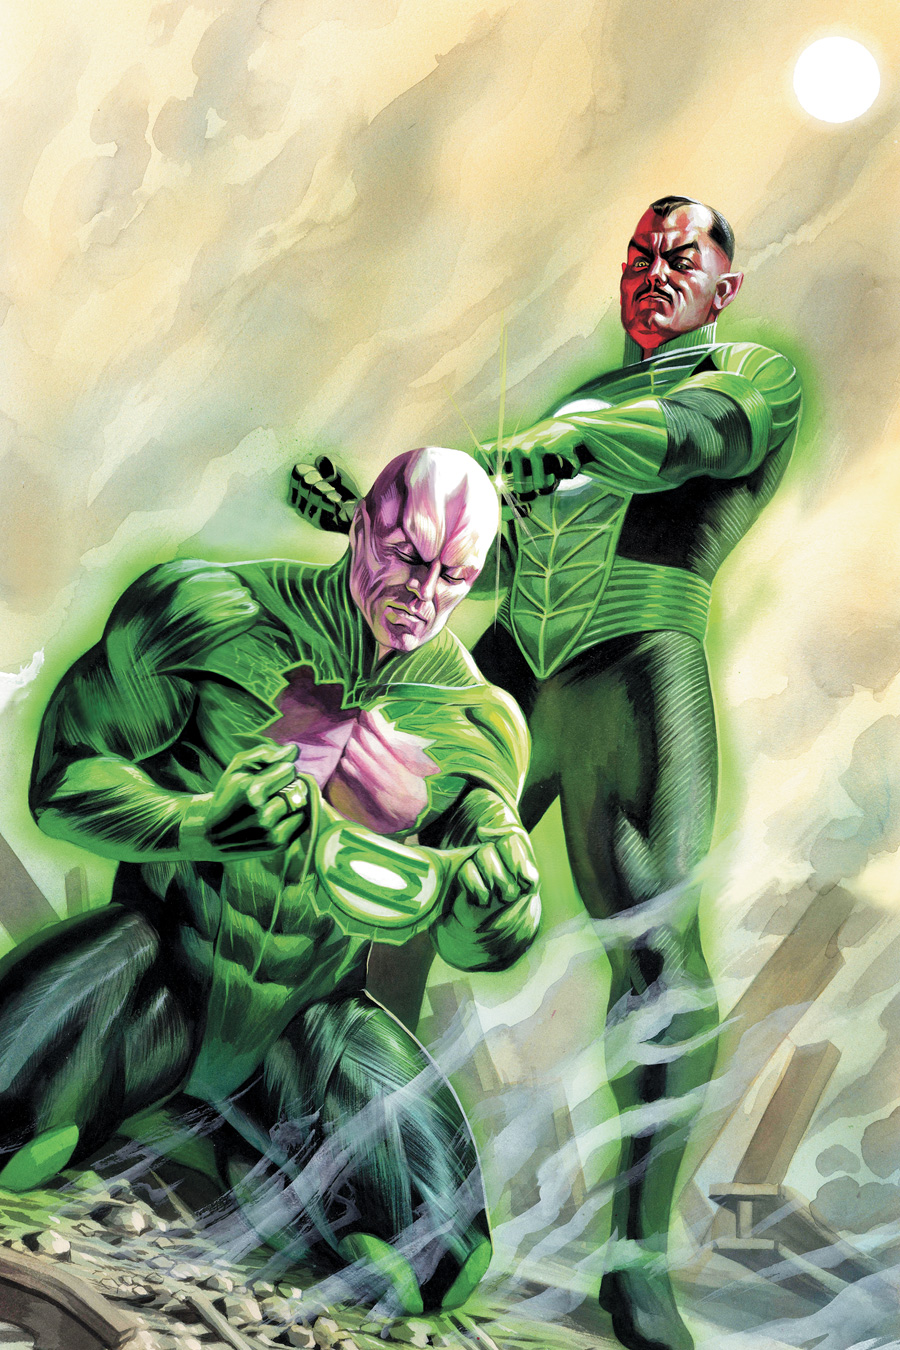 Green Lantern Corps (Flashpoint Timeline)